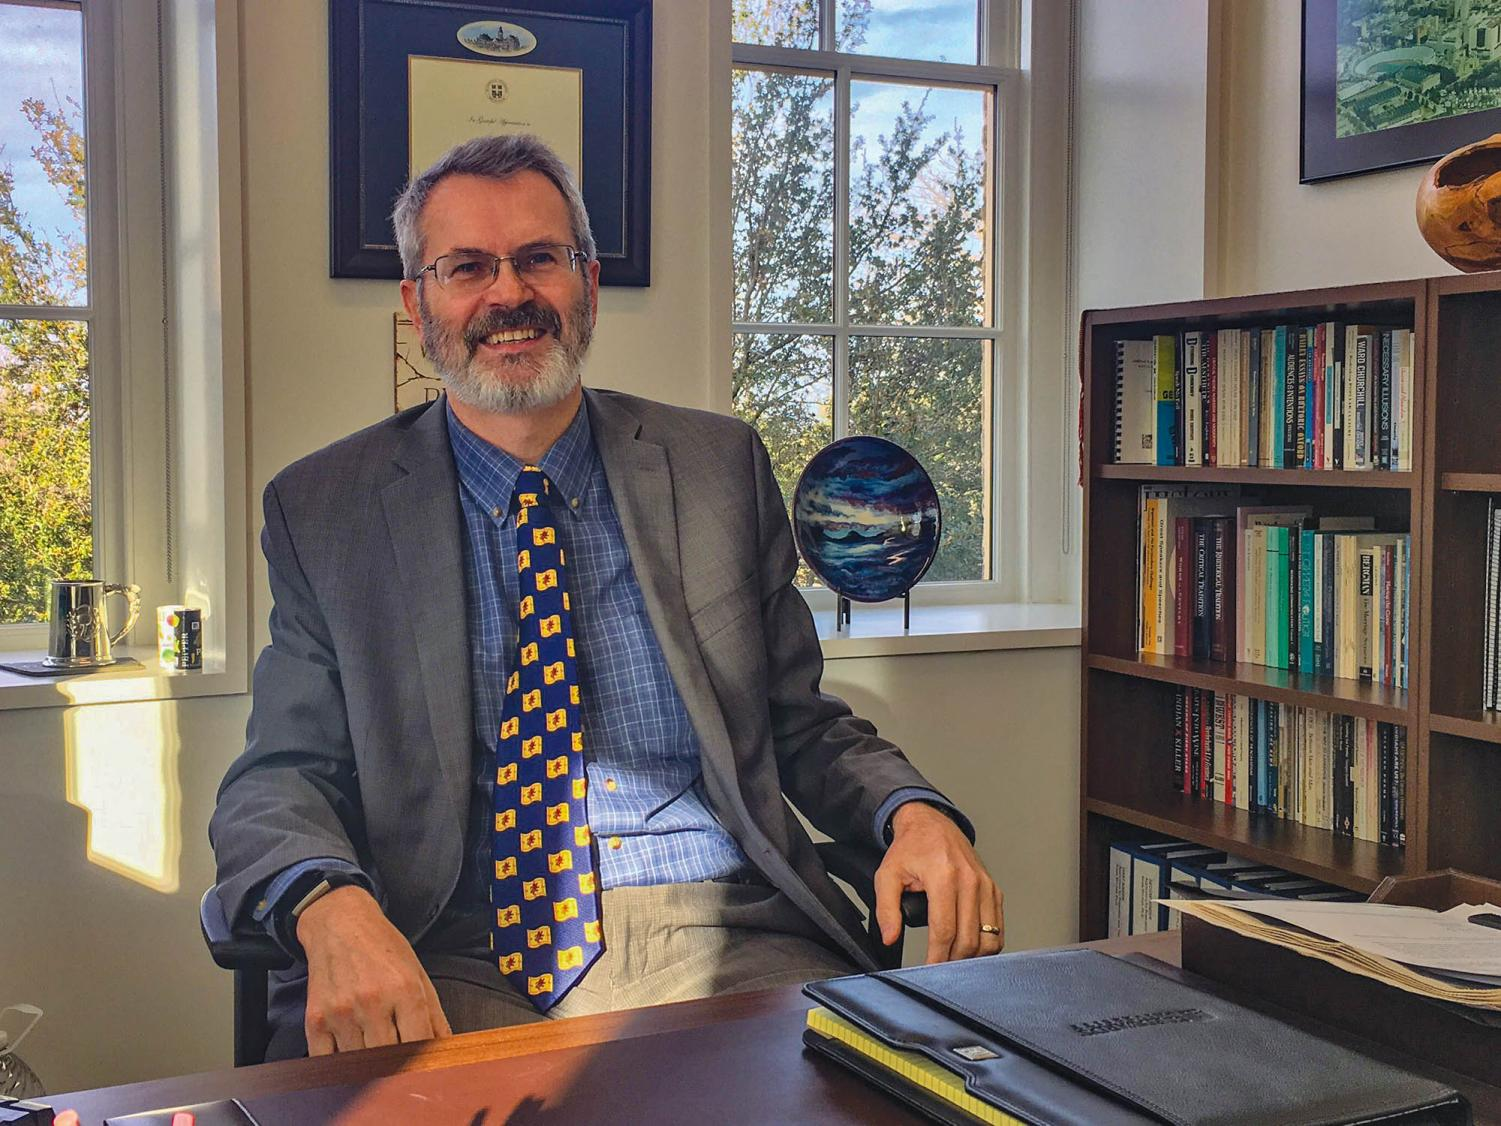 Dr. Mitchell has taught at St. Edward's for 25 years and specializes in areas of Rhetoric, Media Studies and Secular Studies.